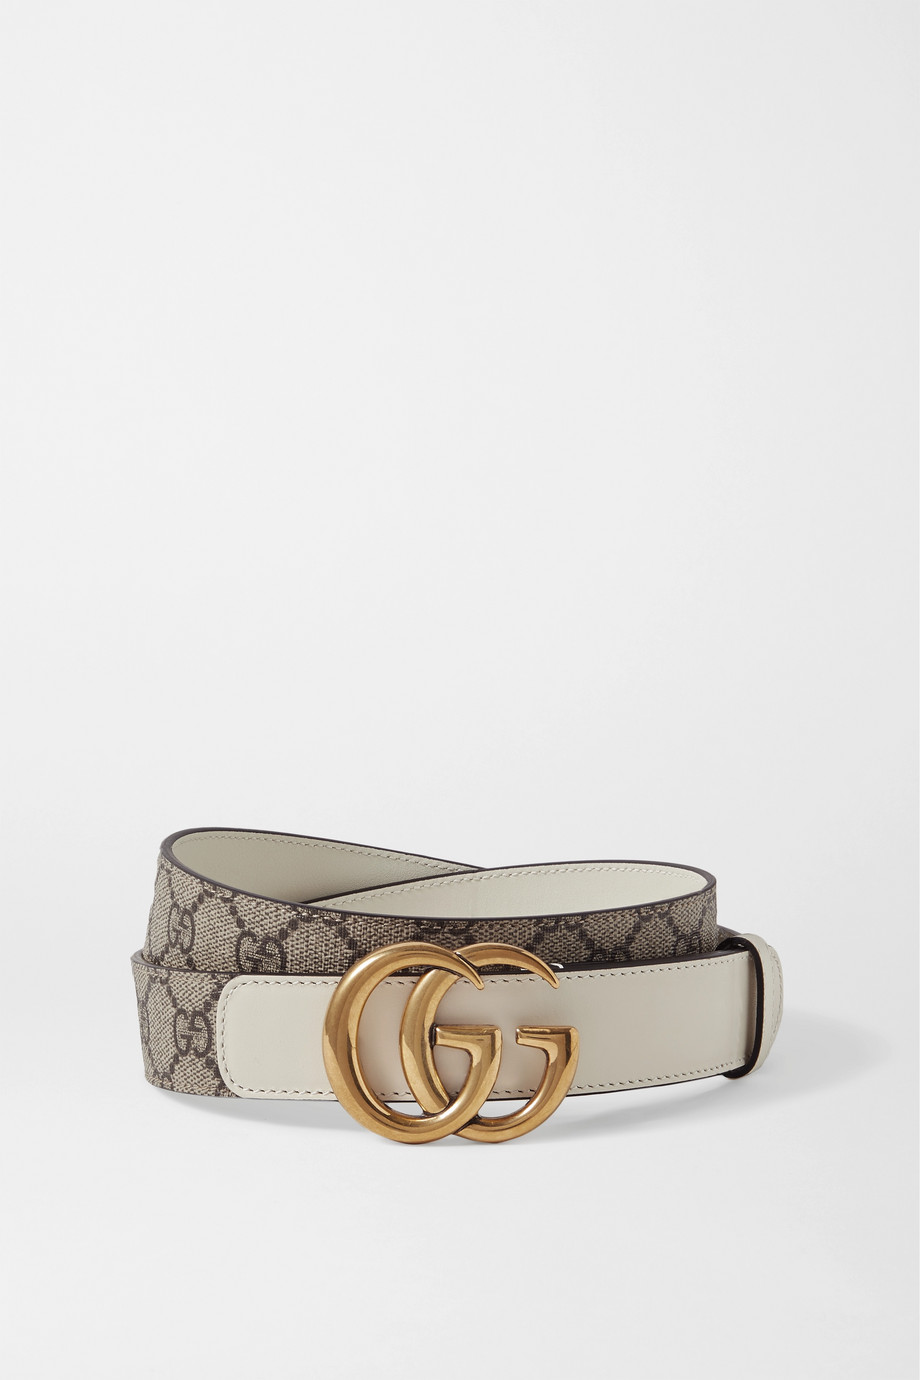 Gucci GG Marmont leather-trimmed printed coated-canvas belt